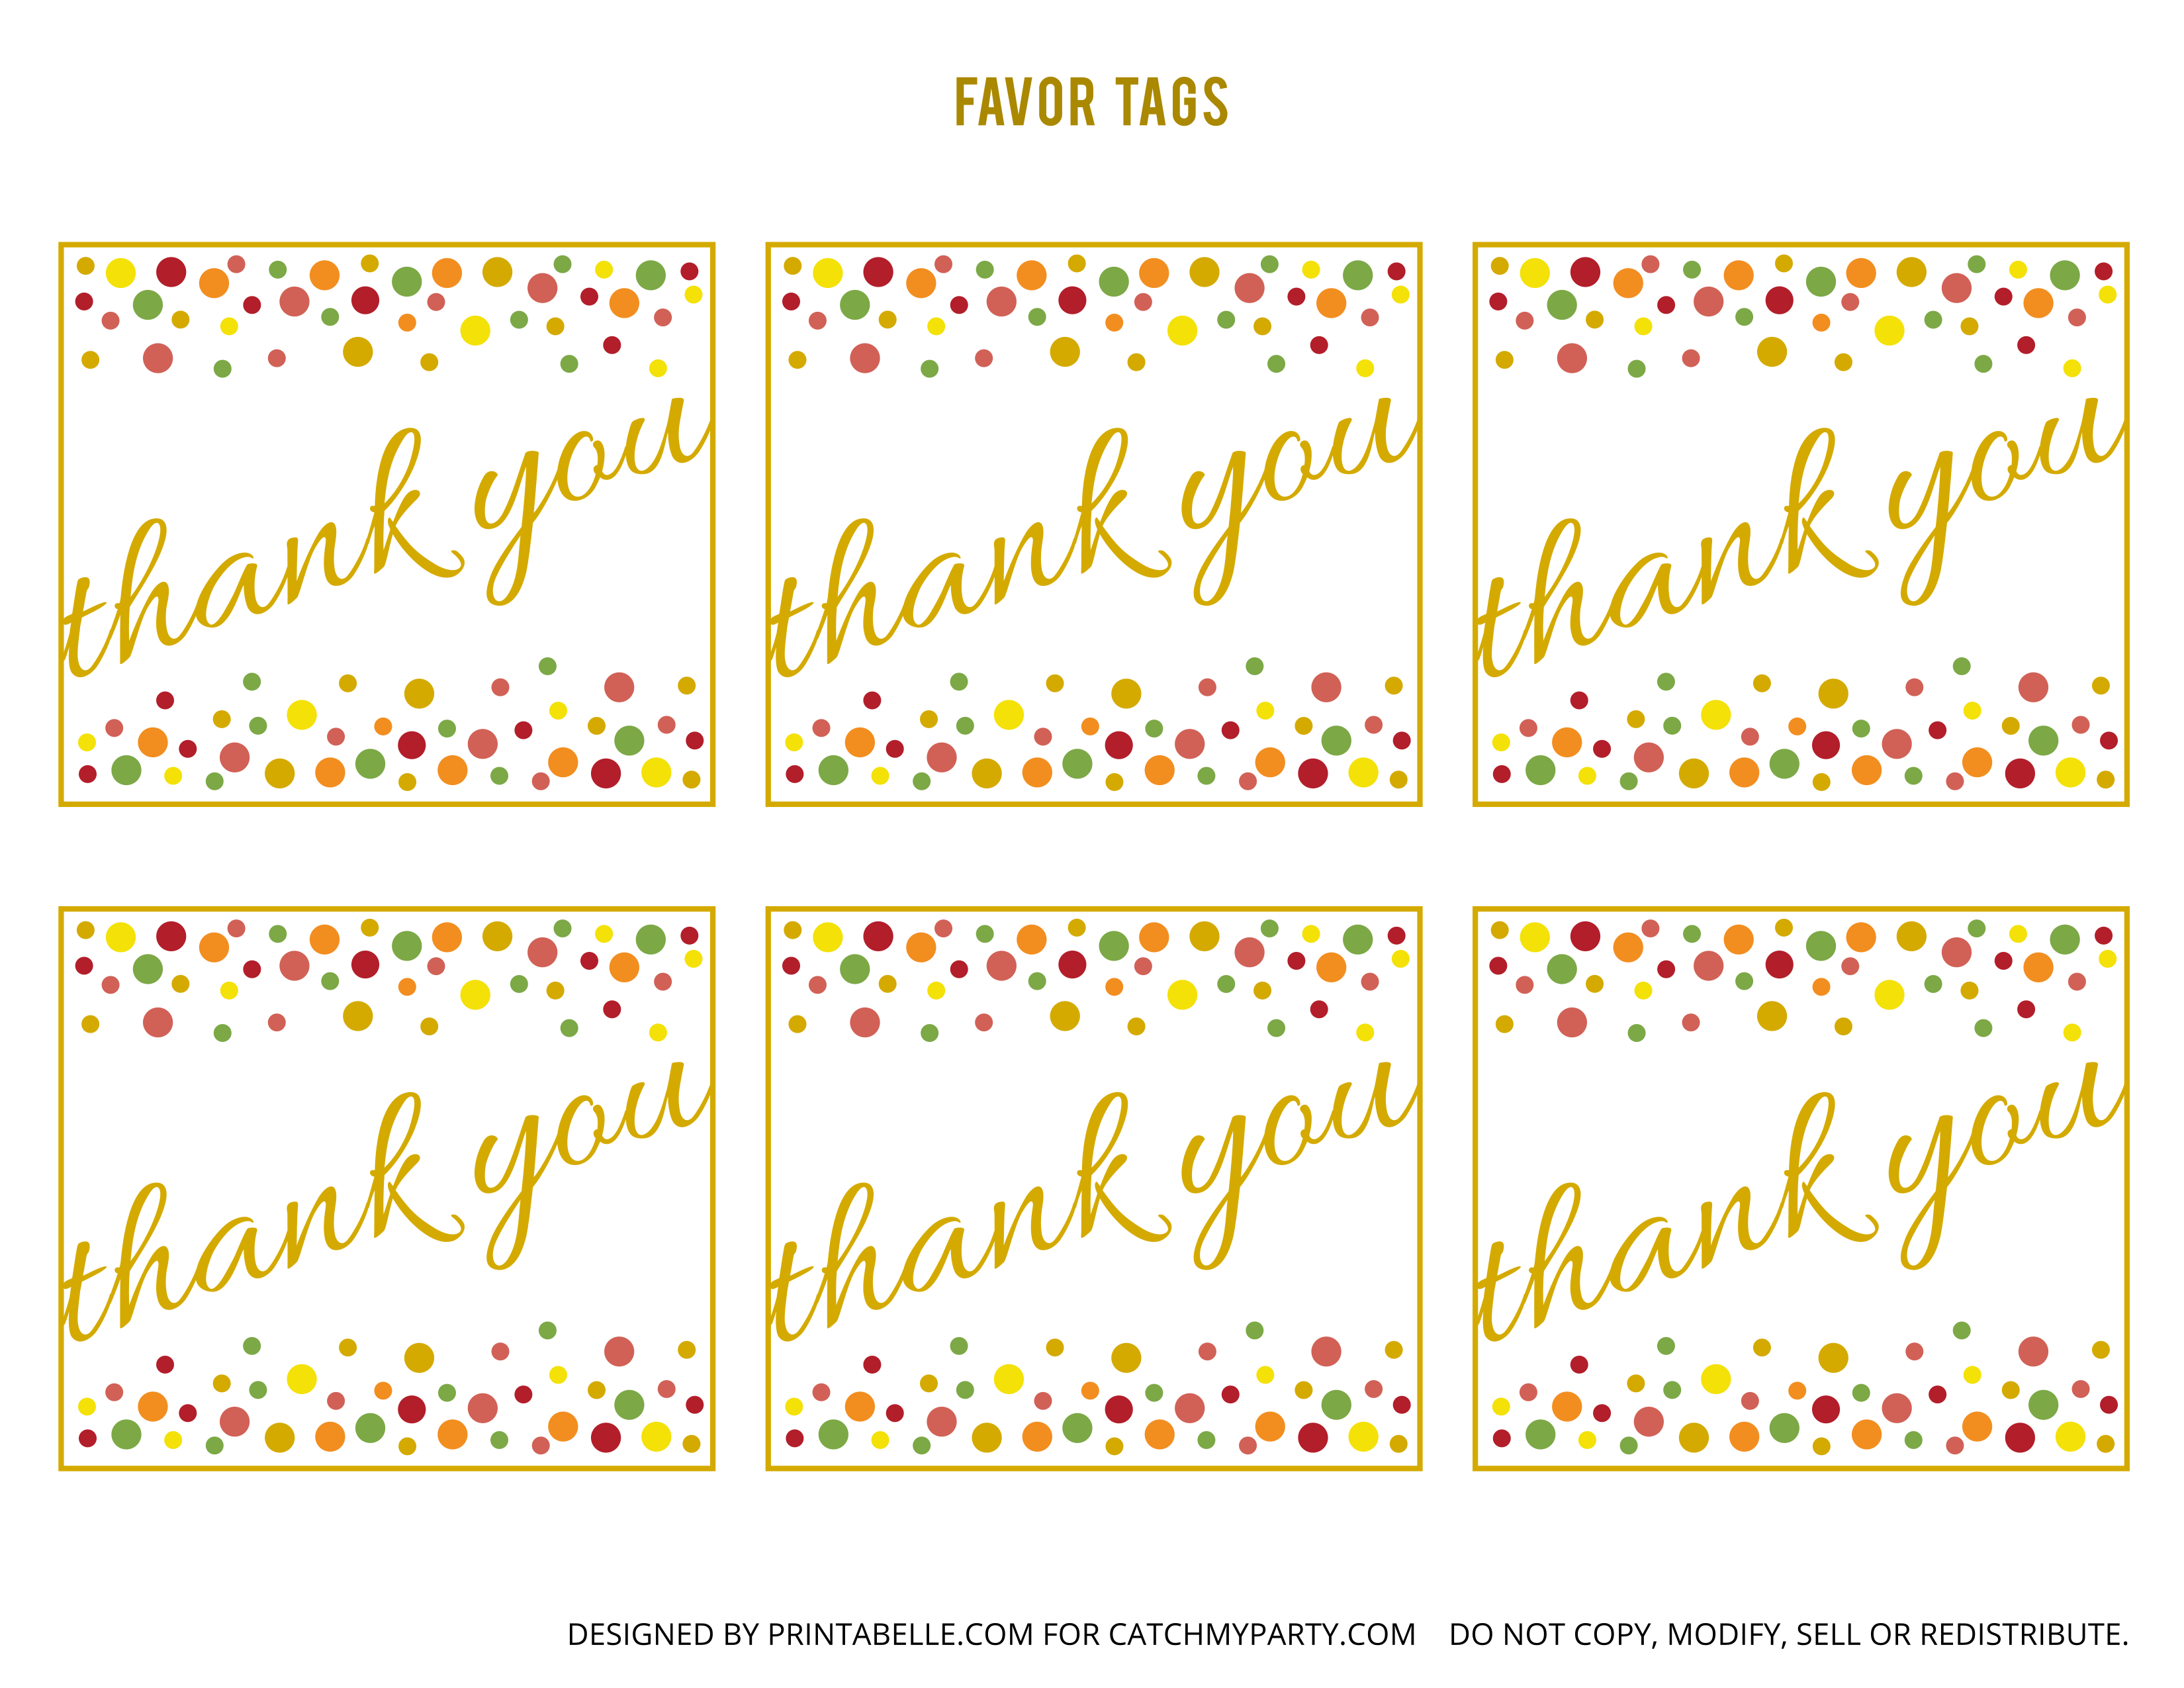 Free Gold And Polka Dot Birthday Printables | Catch My Party - Free Printable Thank You Tags For Birthday Favors